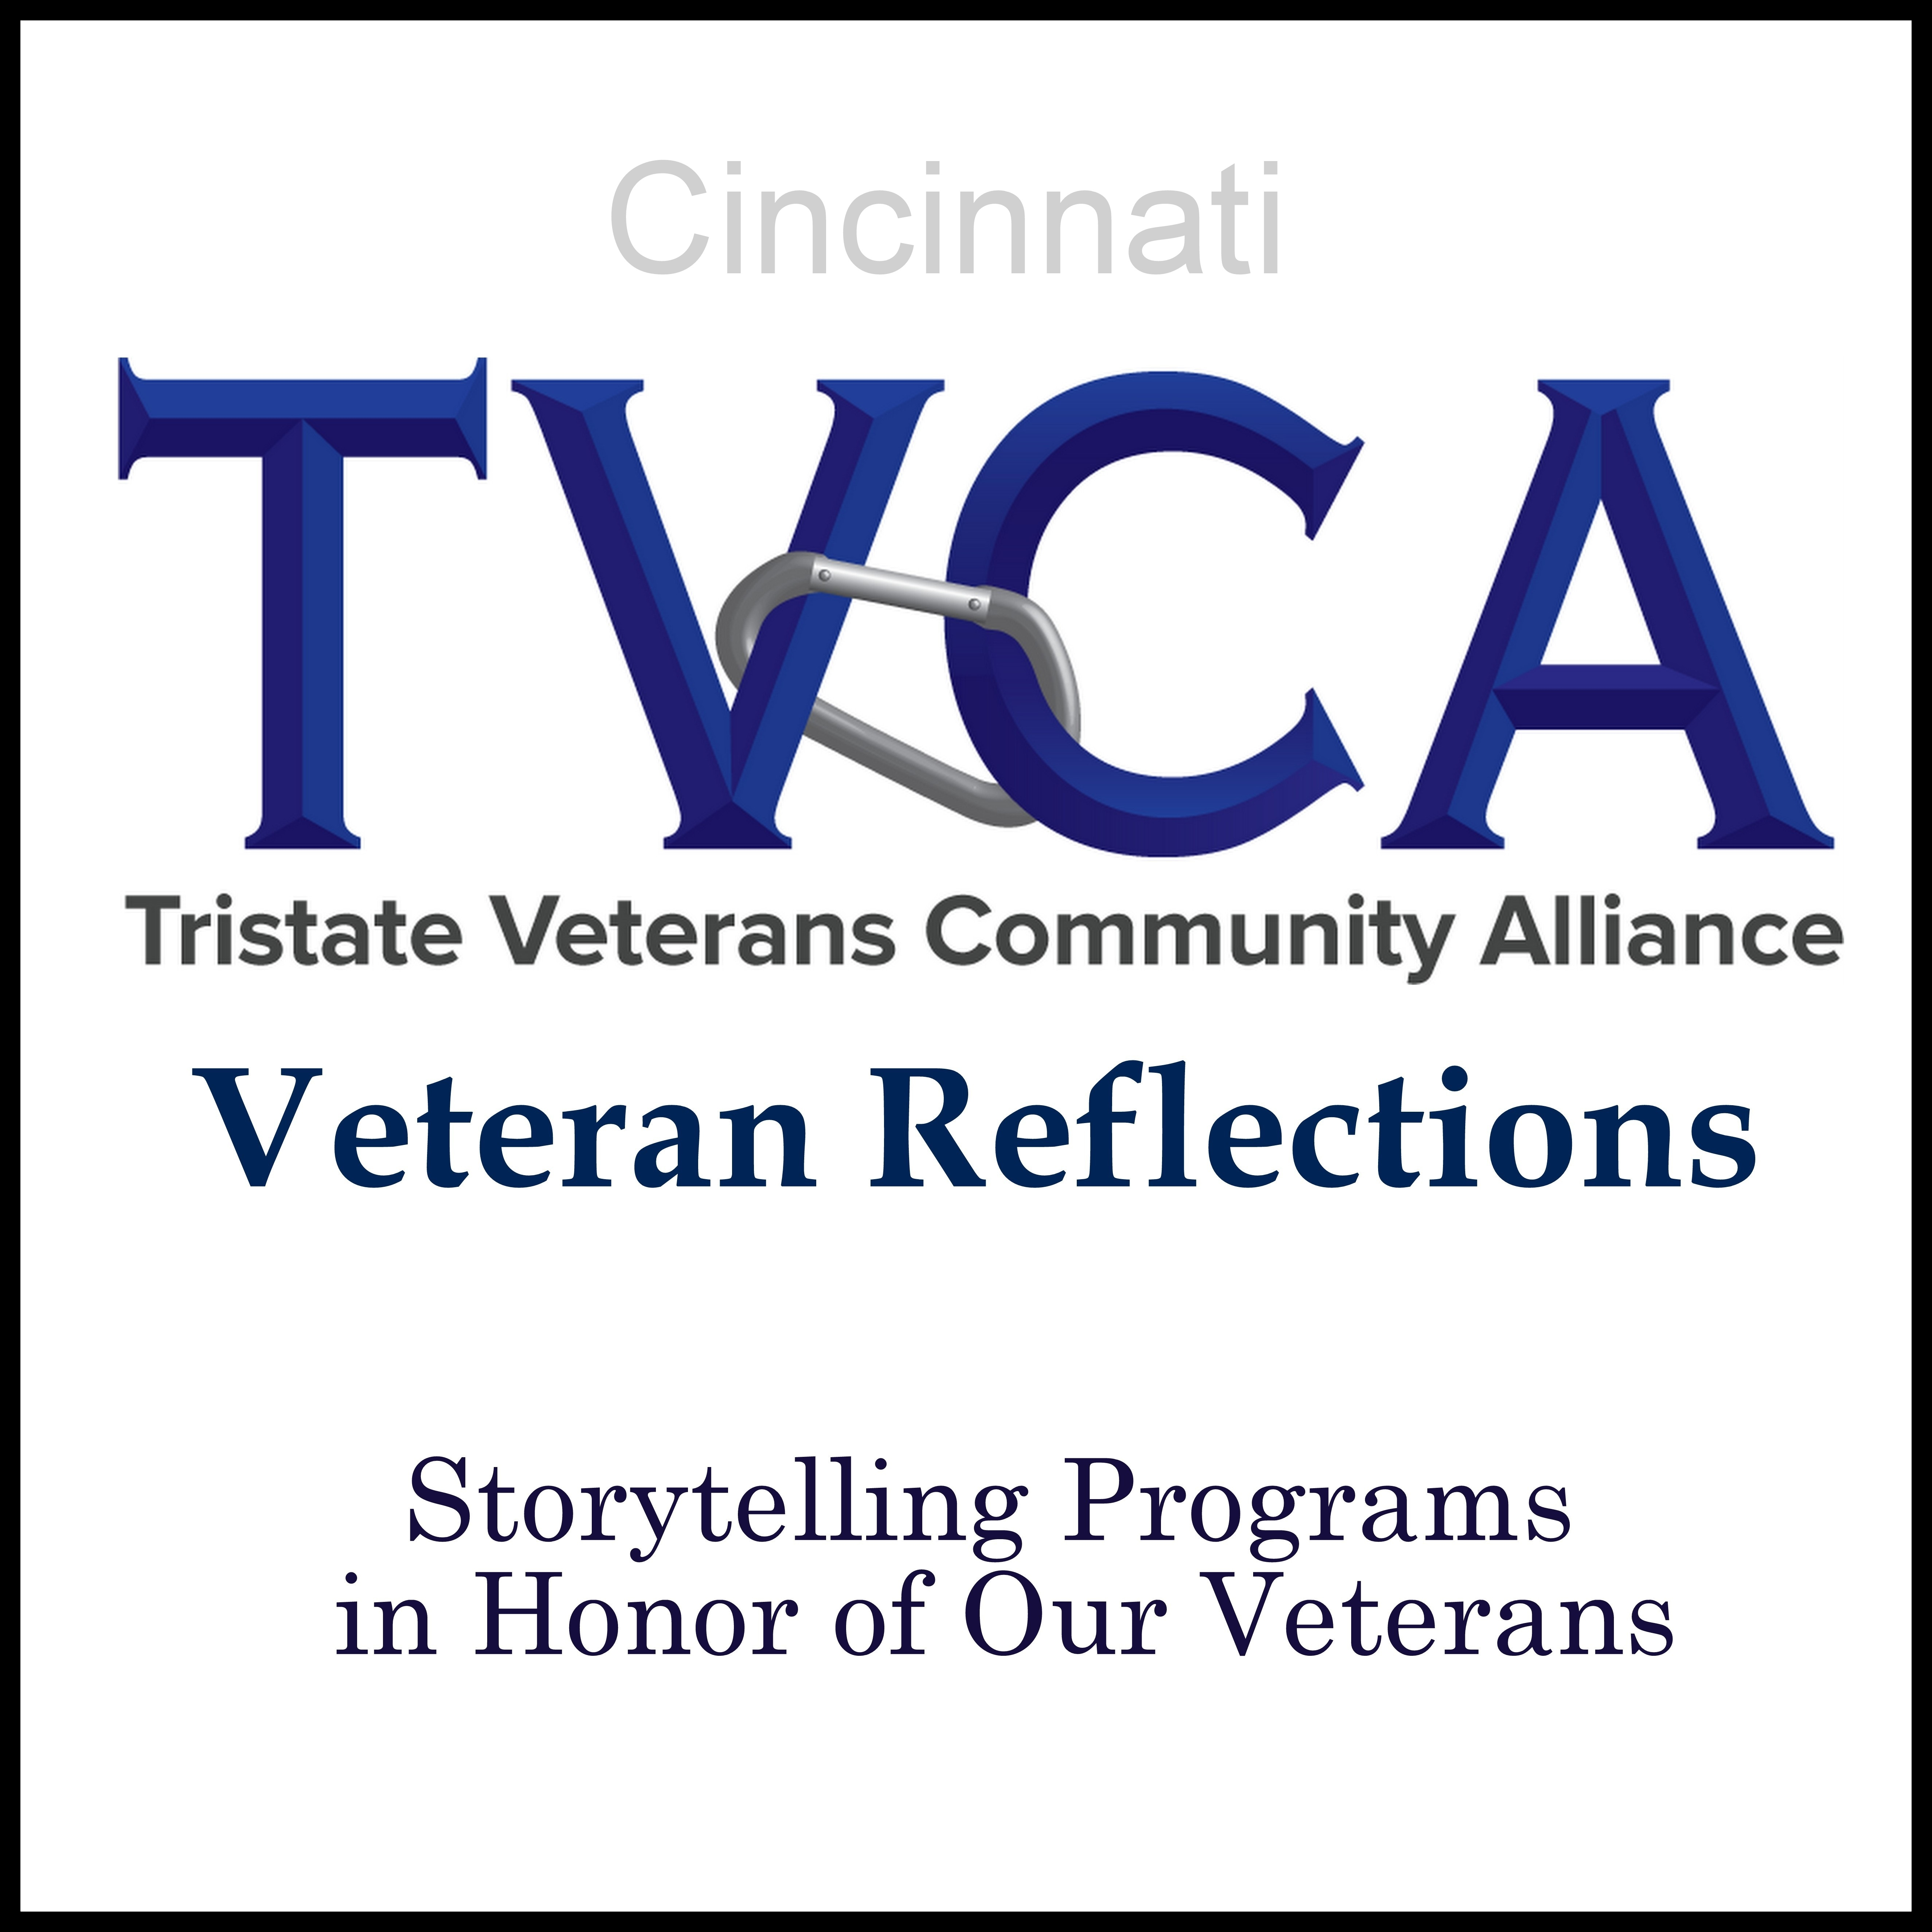 Tristate Veterans Community Alliance: Veteran Reflections